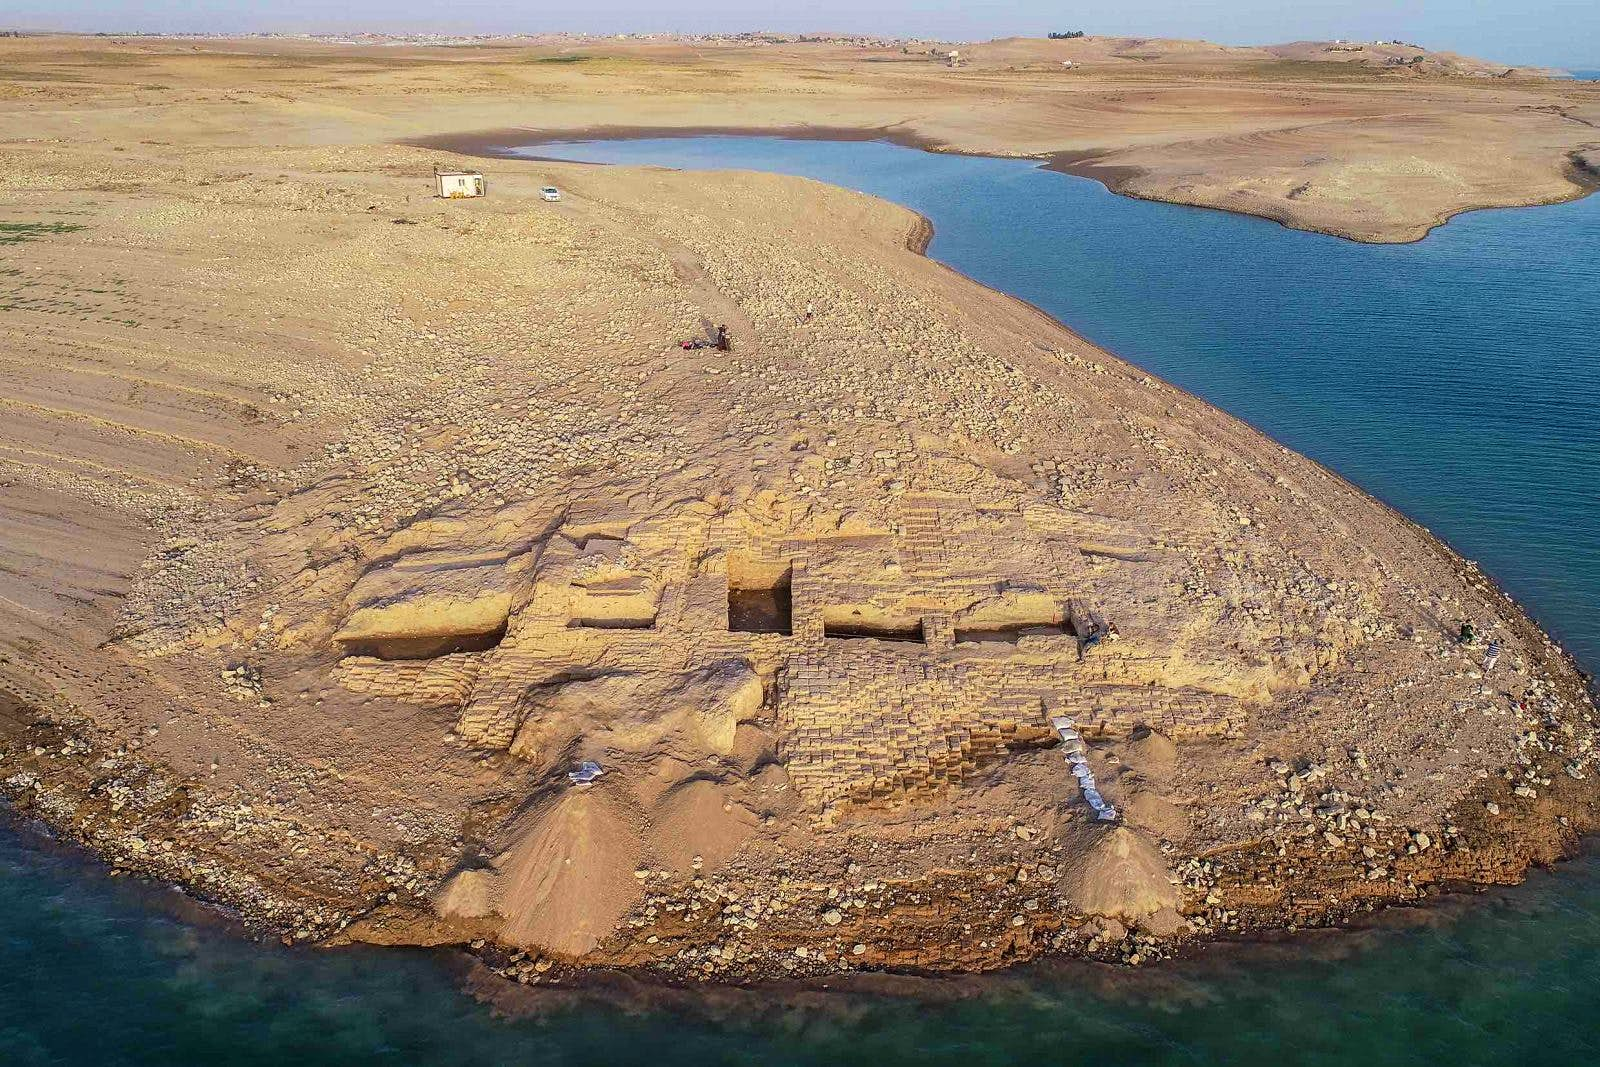 Mysterious 3400-year-old palace emerges from the Tigris River during drought - Lonely Planet